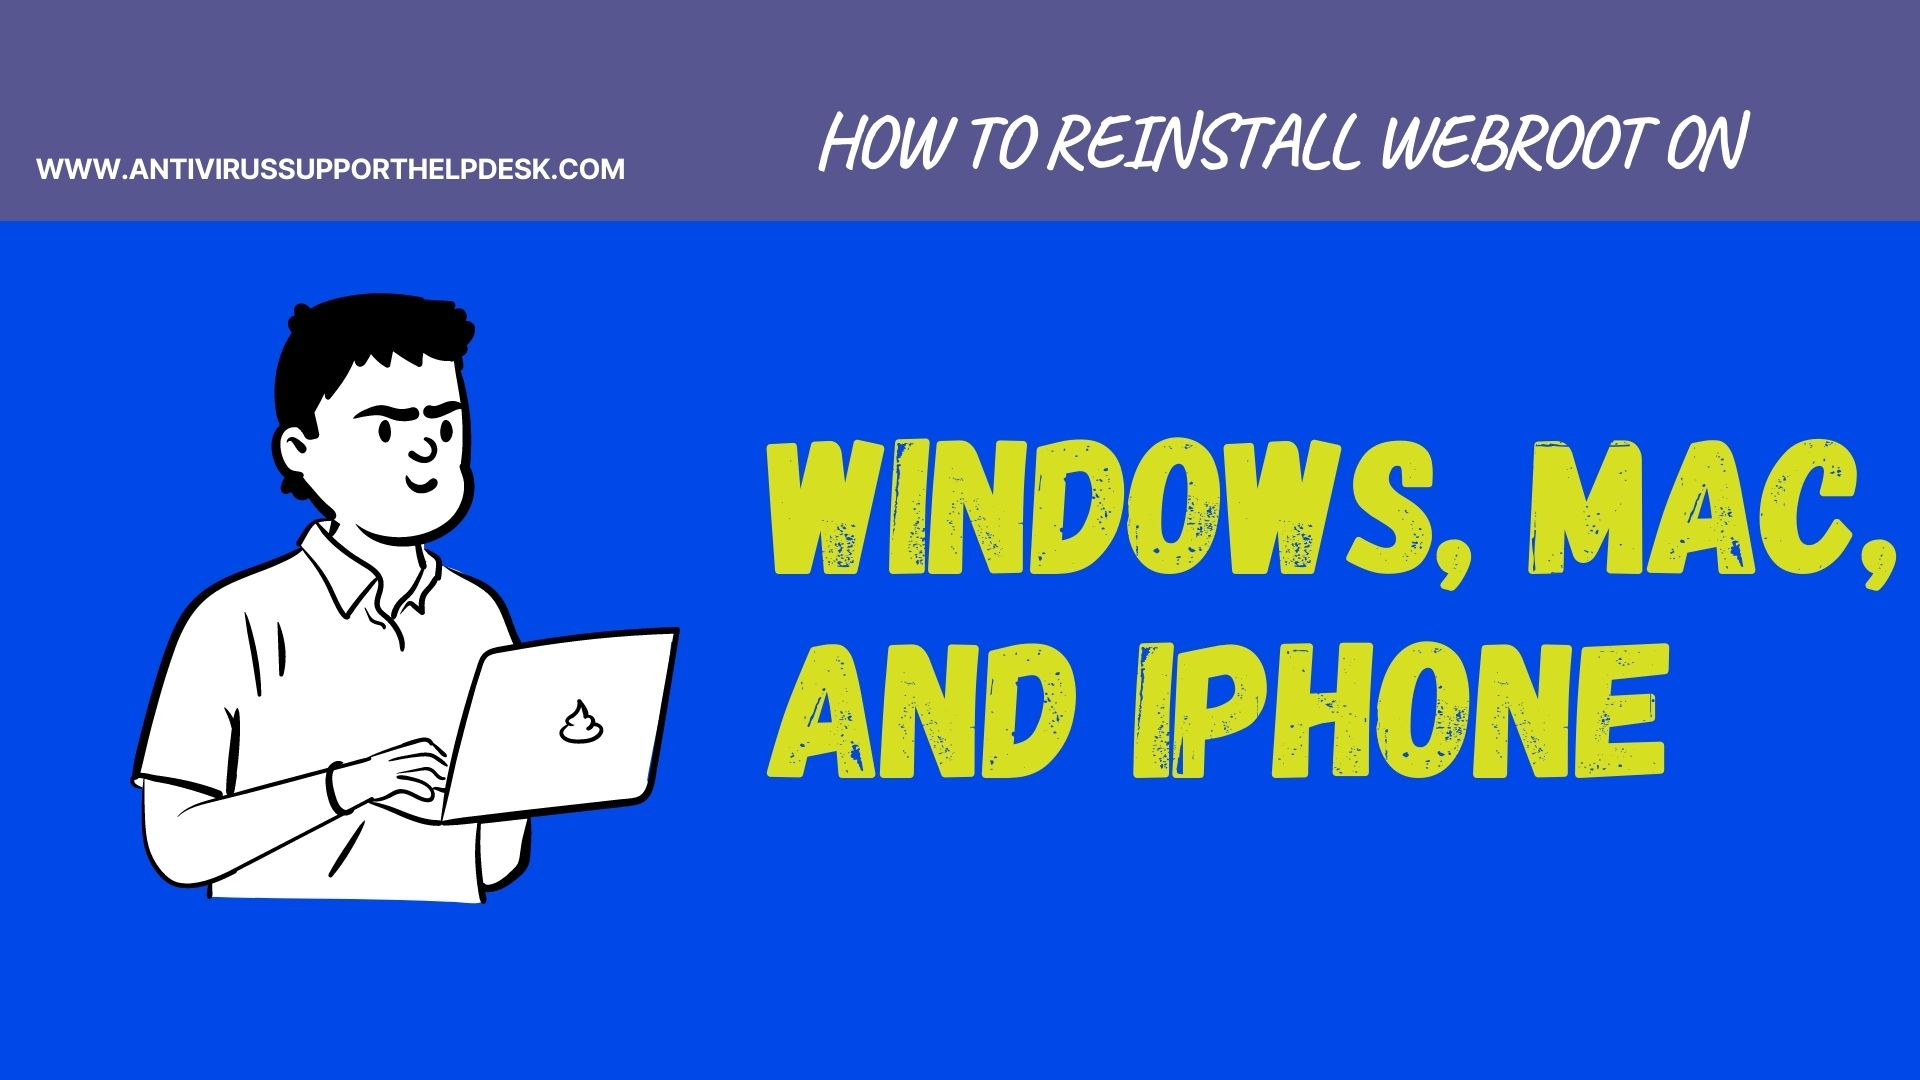 HOW TO INSTALL WEBROOT ON WINDOWS, MAC, AND IPHONE?